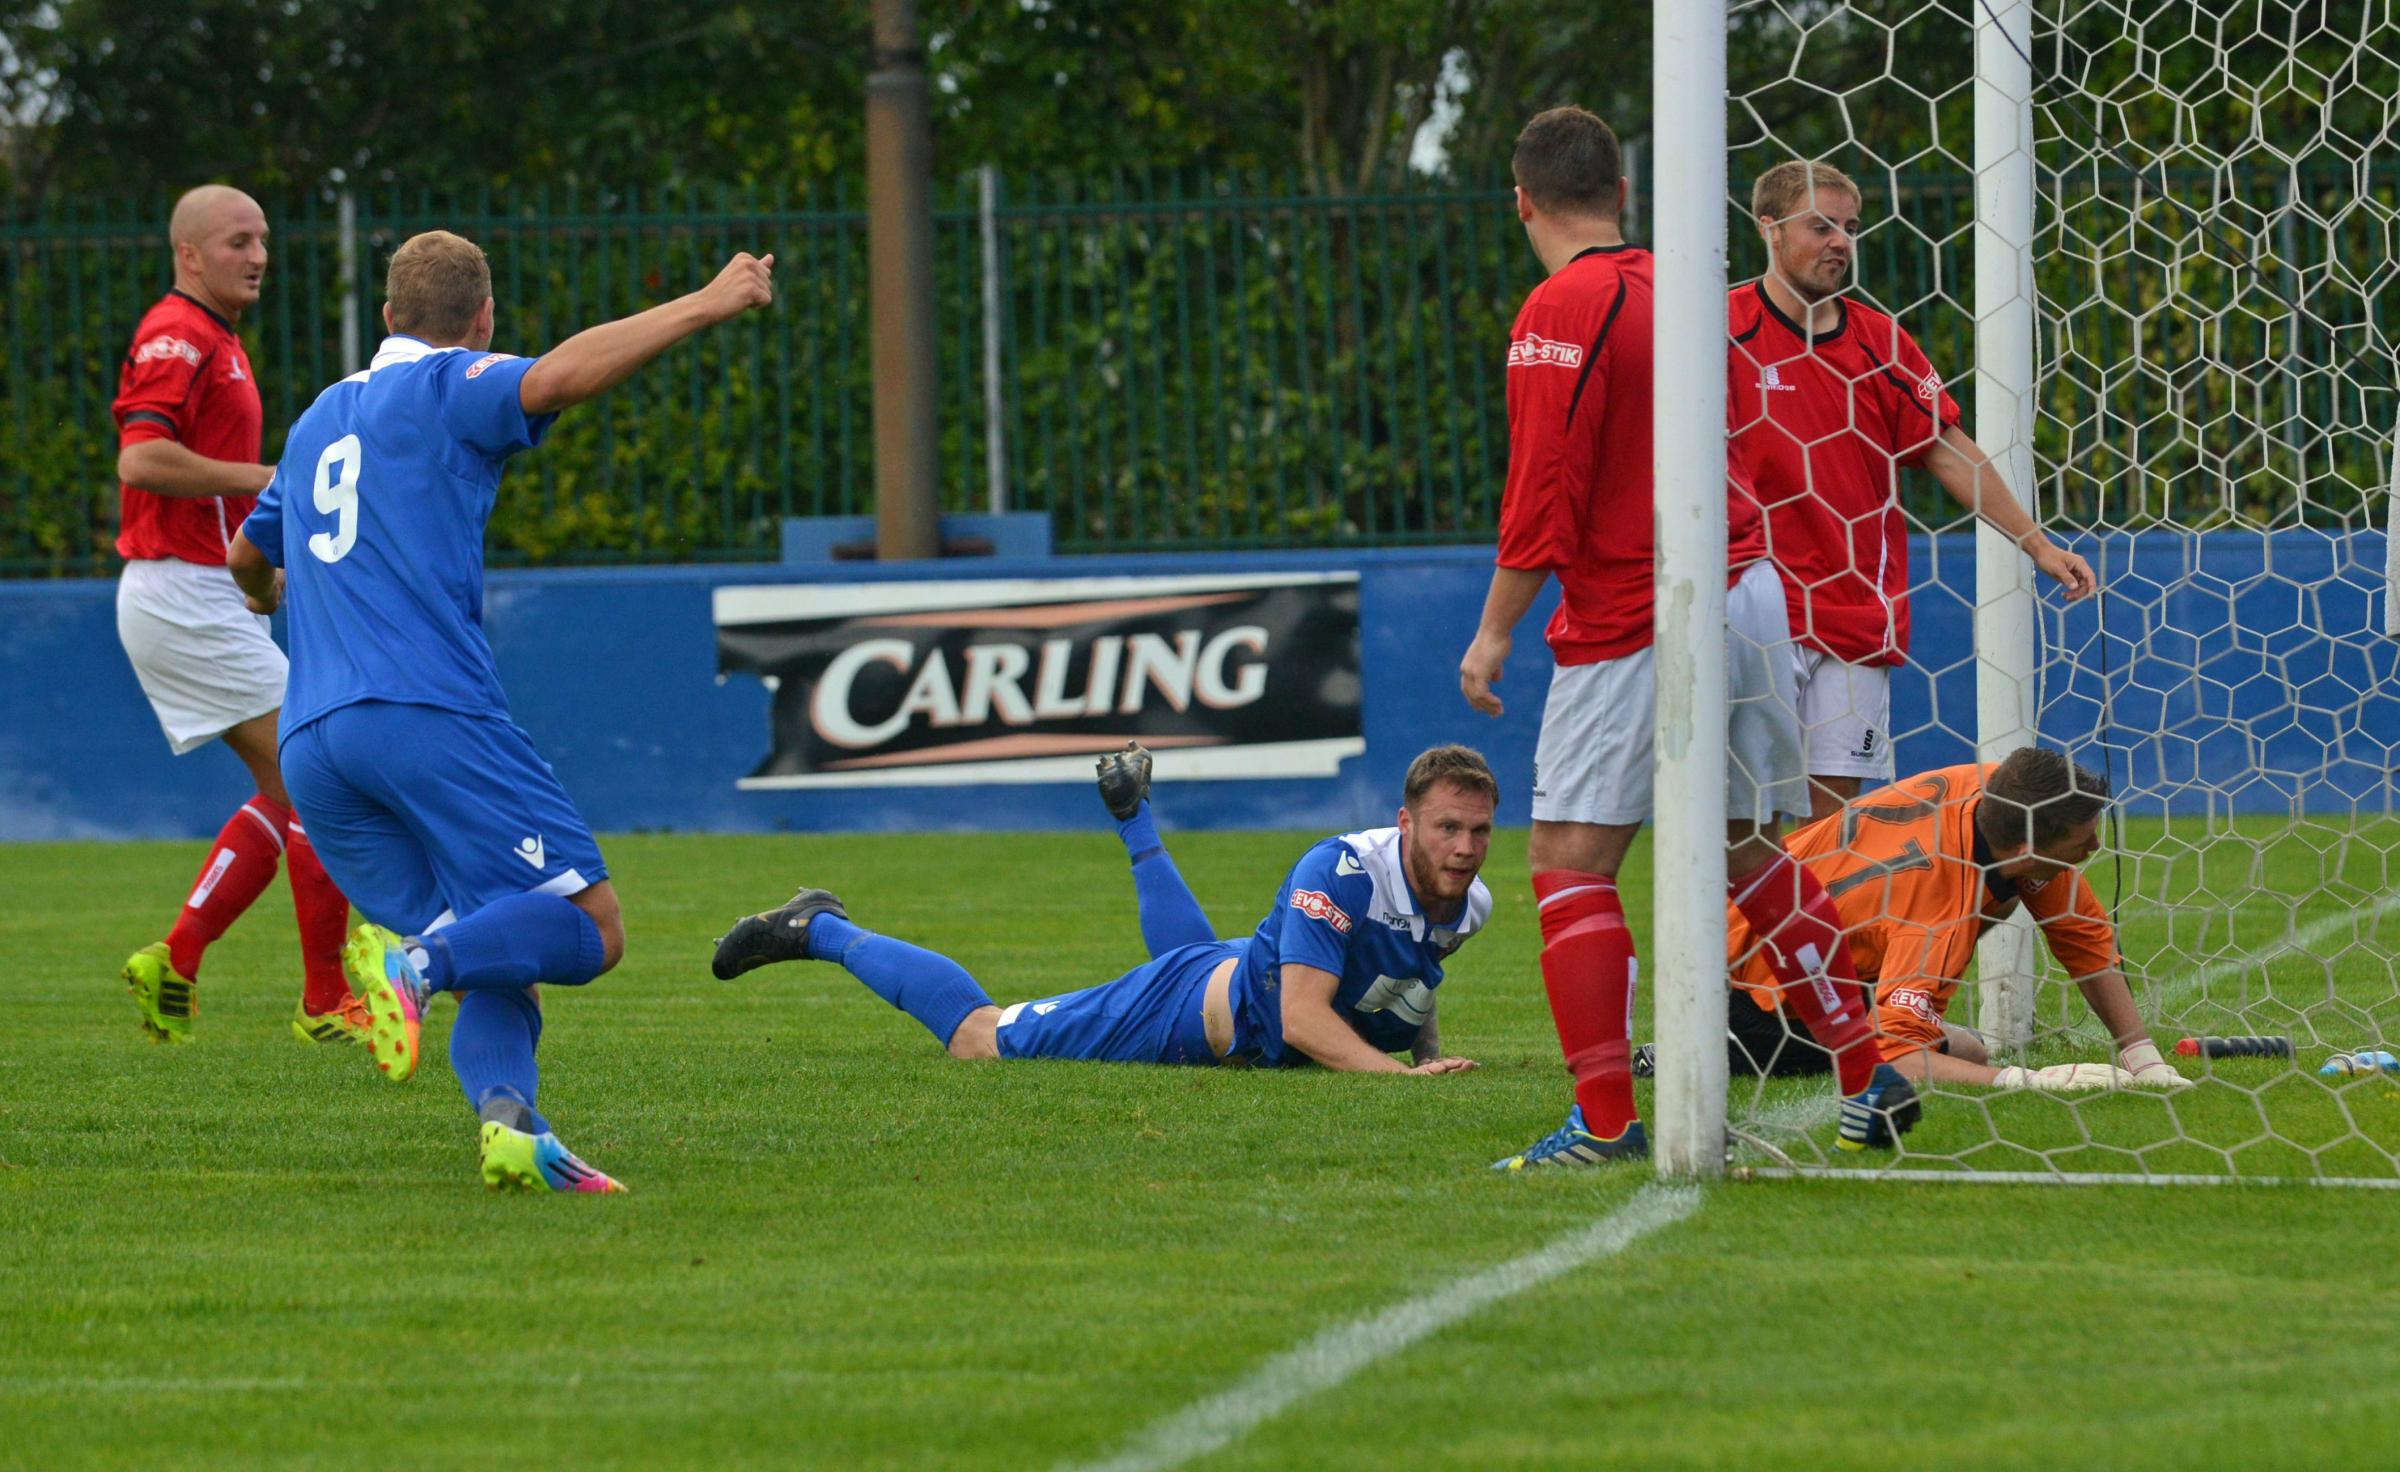 Savory and Harris double up as Farsley go nap